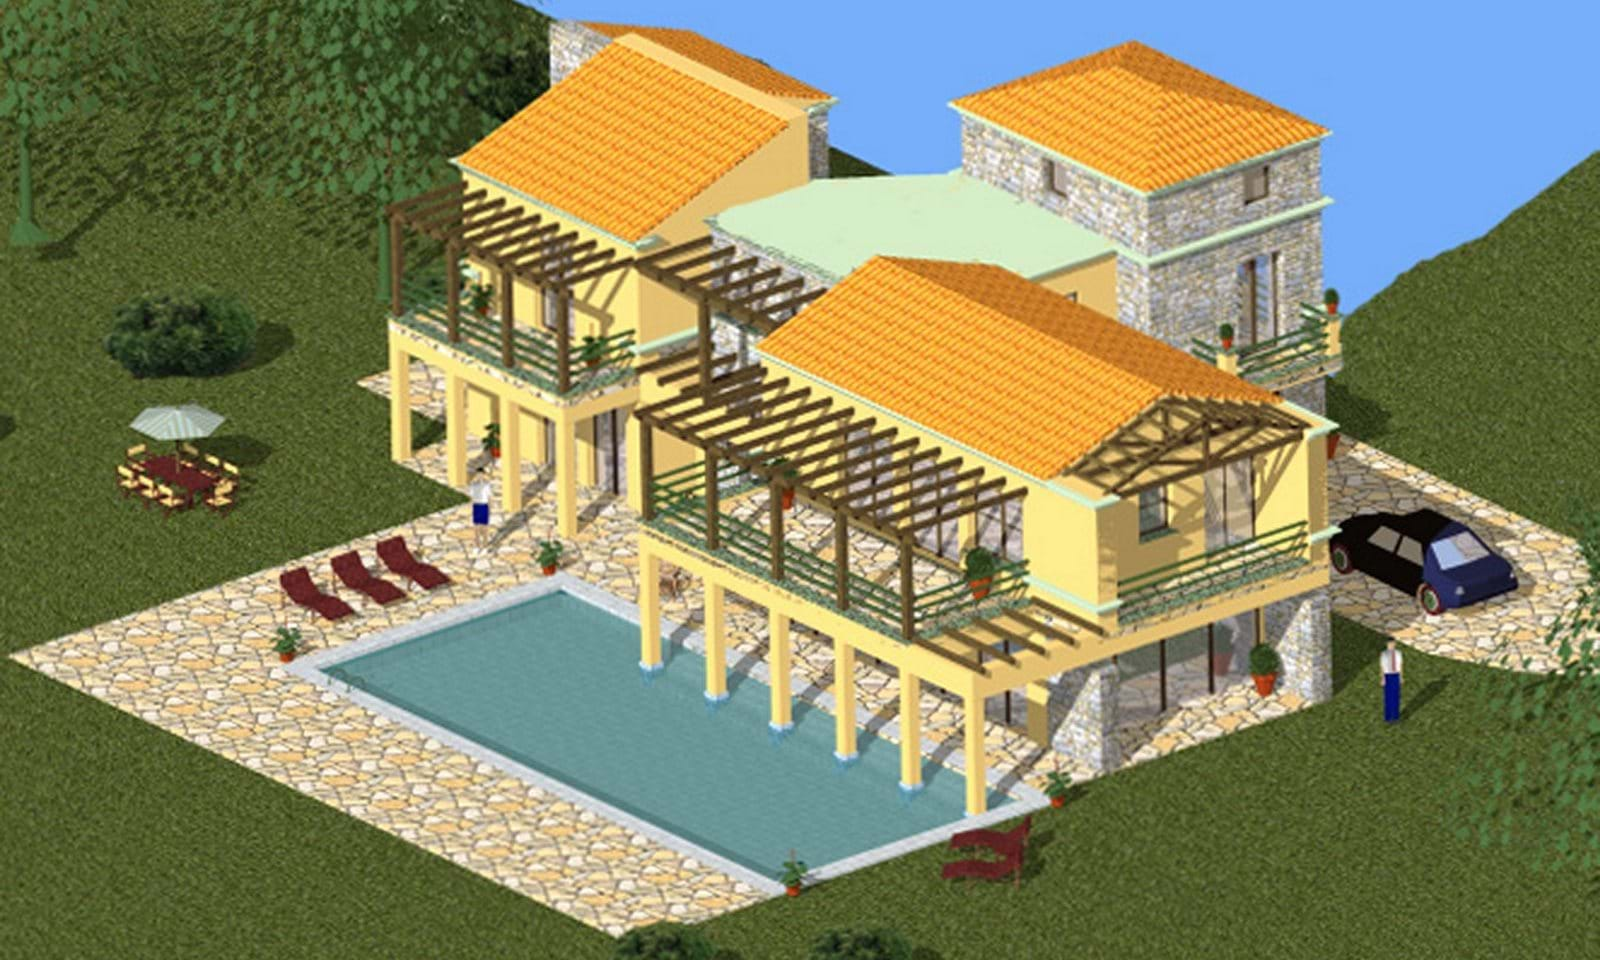 Build a house in Corfu